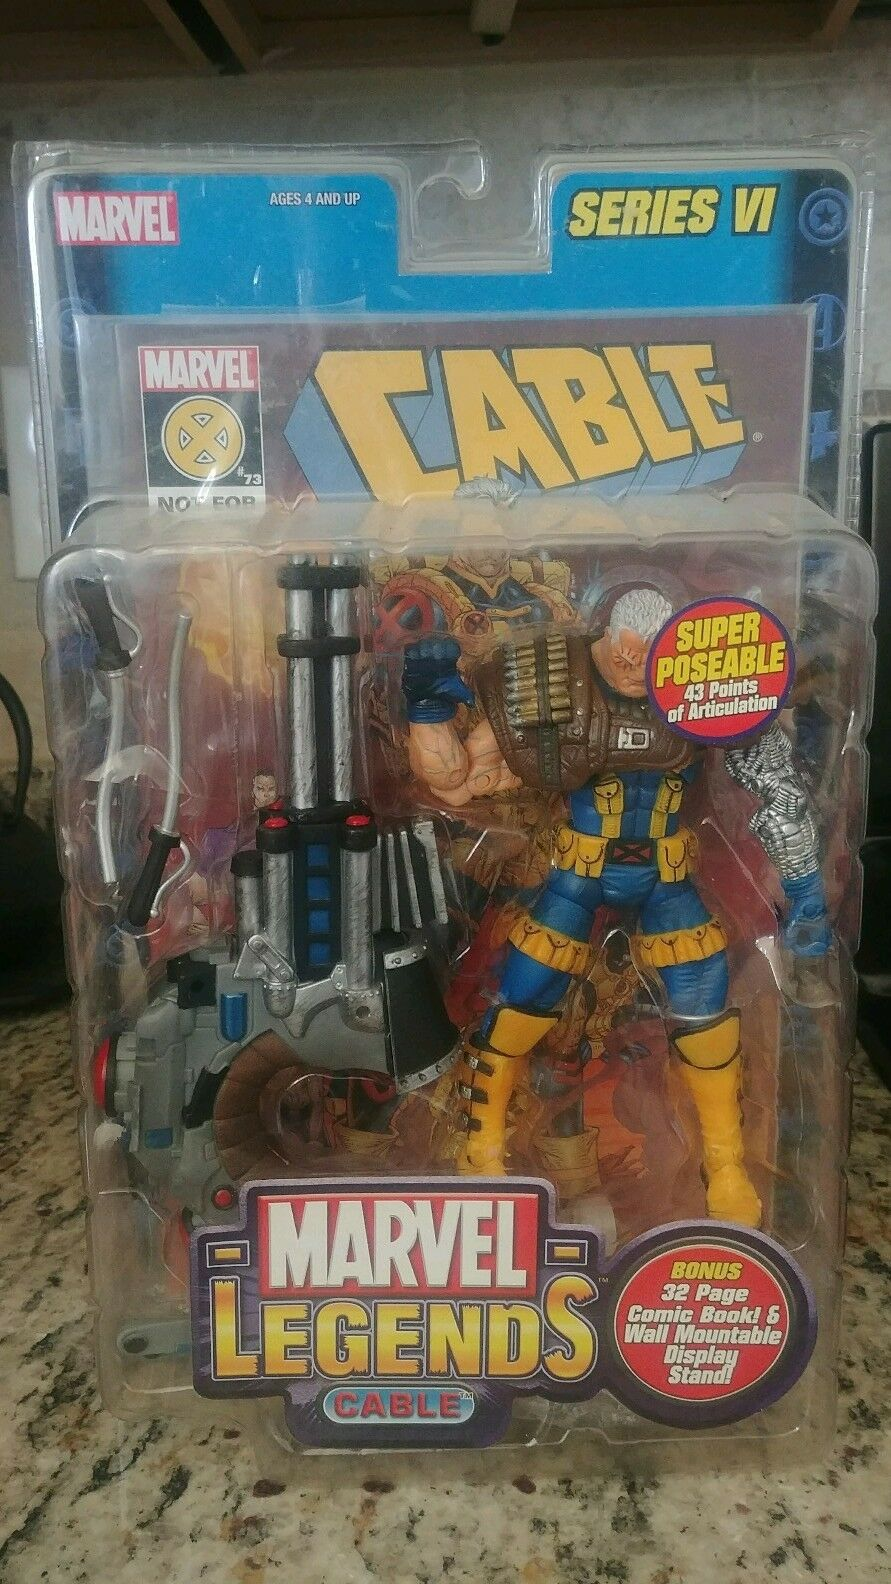 Marvel Legends Cable Series 6 VI MINT VHTF Blau Gelb JIM LEE XMEN COSTUME